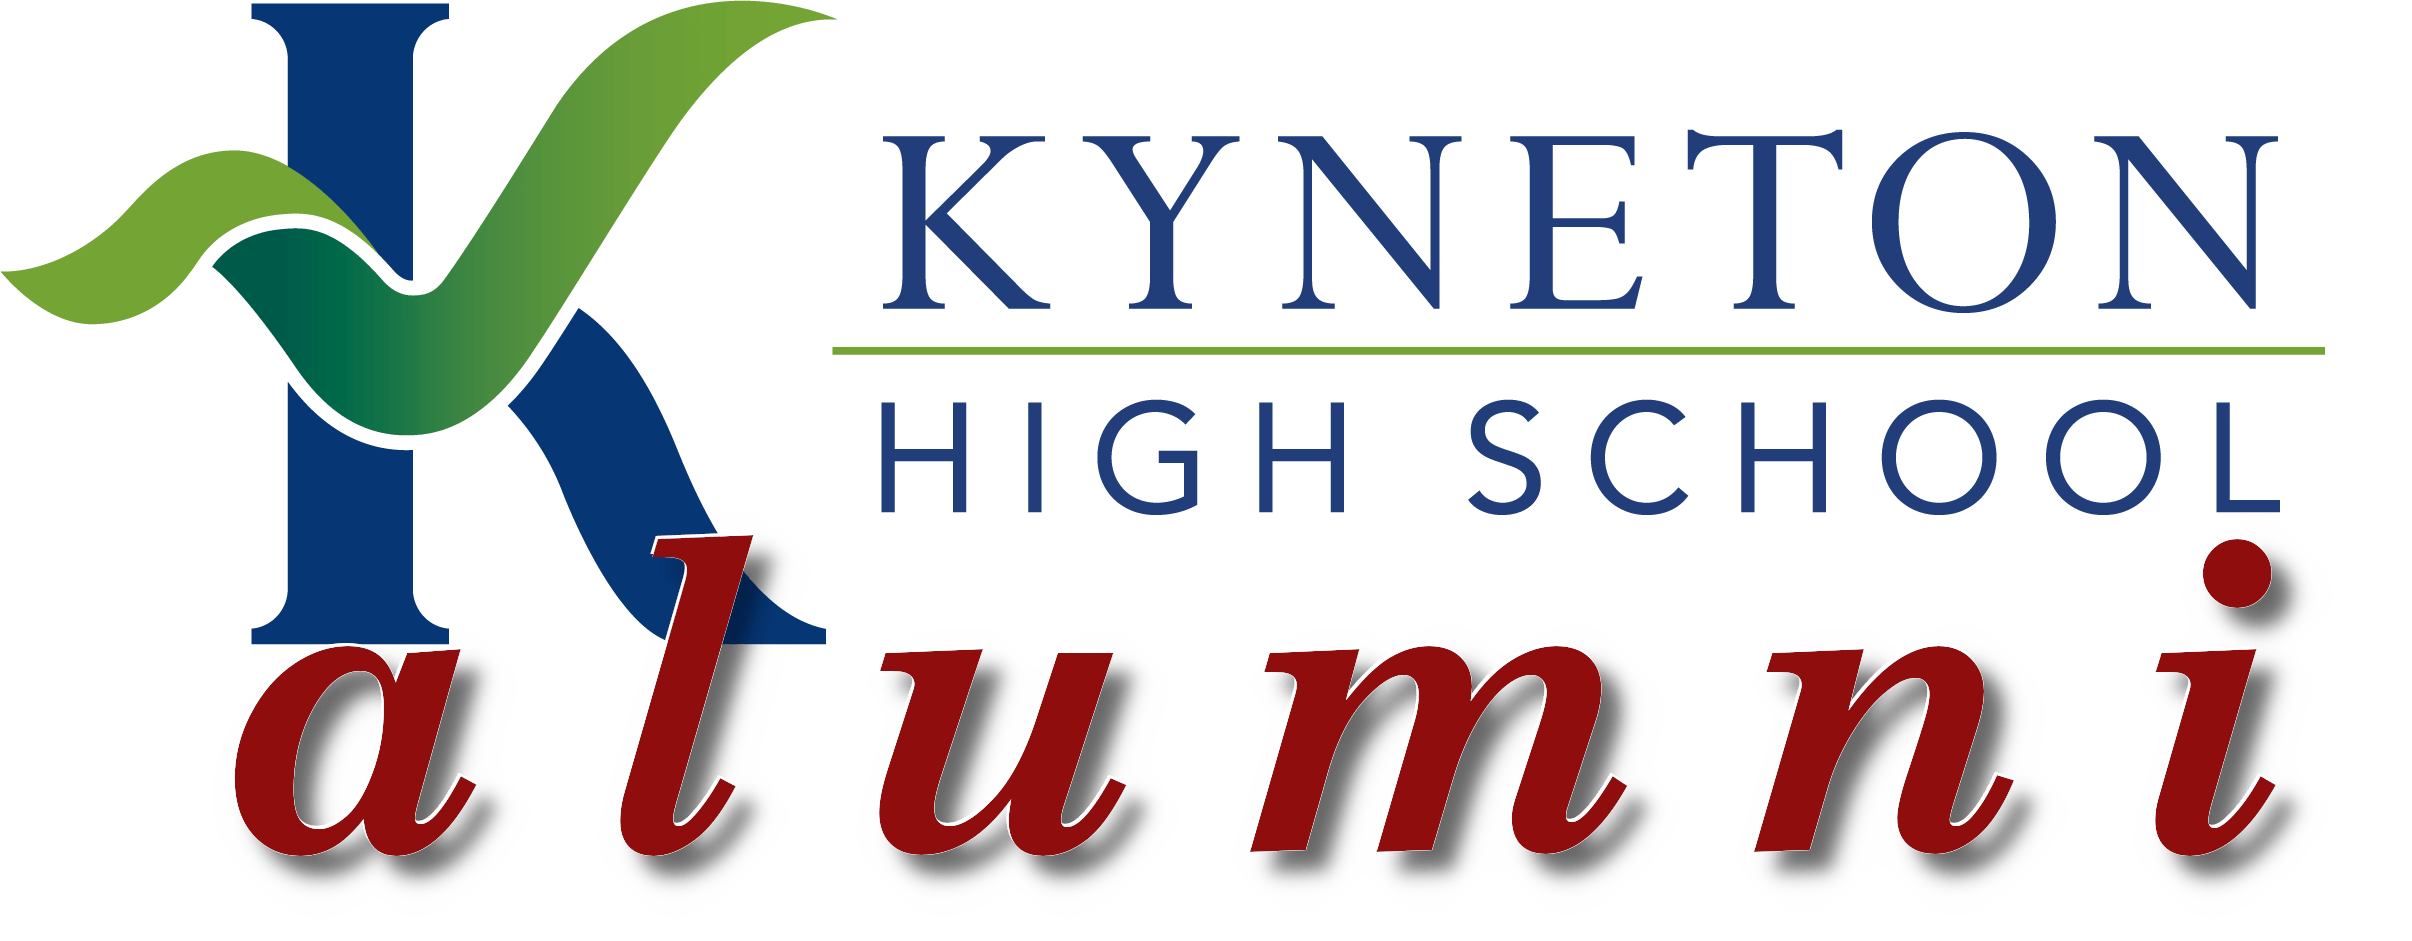 Alumni logo 05 even brighter red with highlight - Kyneton High School - Excellence in Teaching & Learning